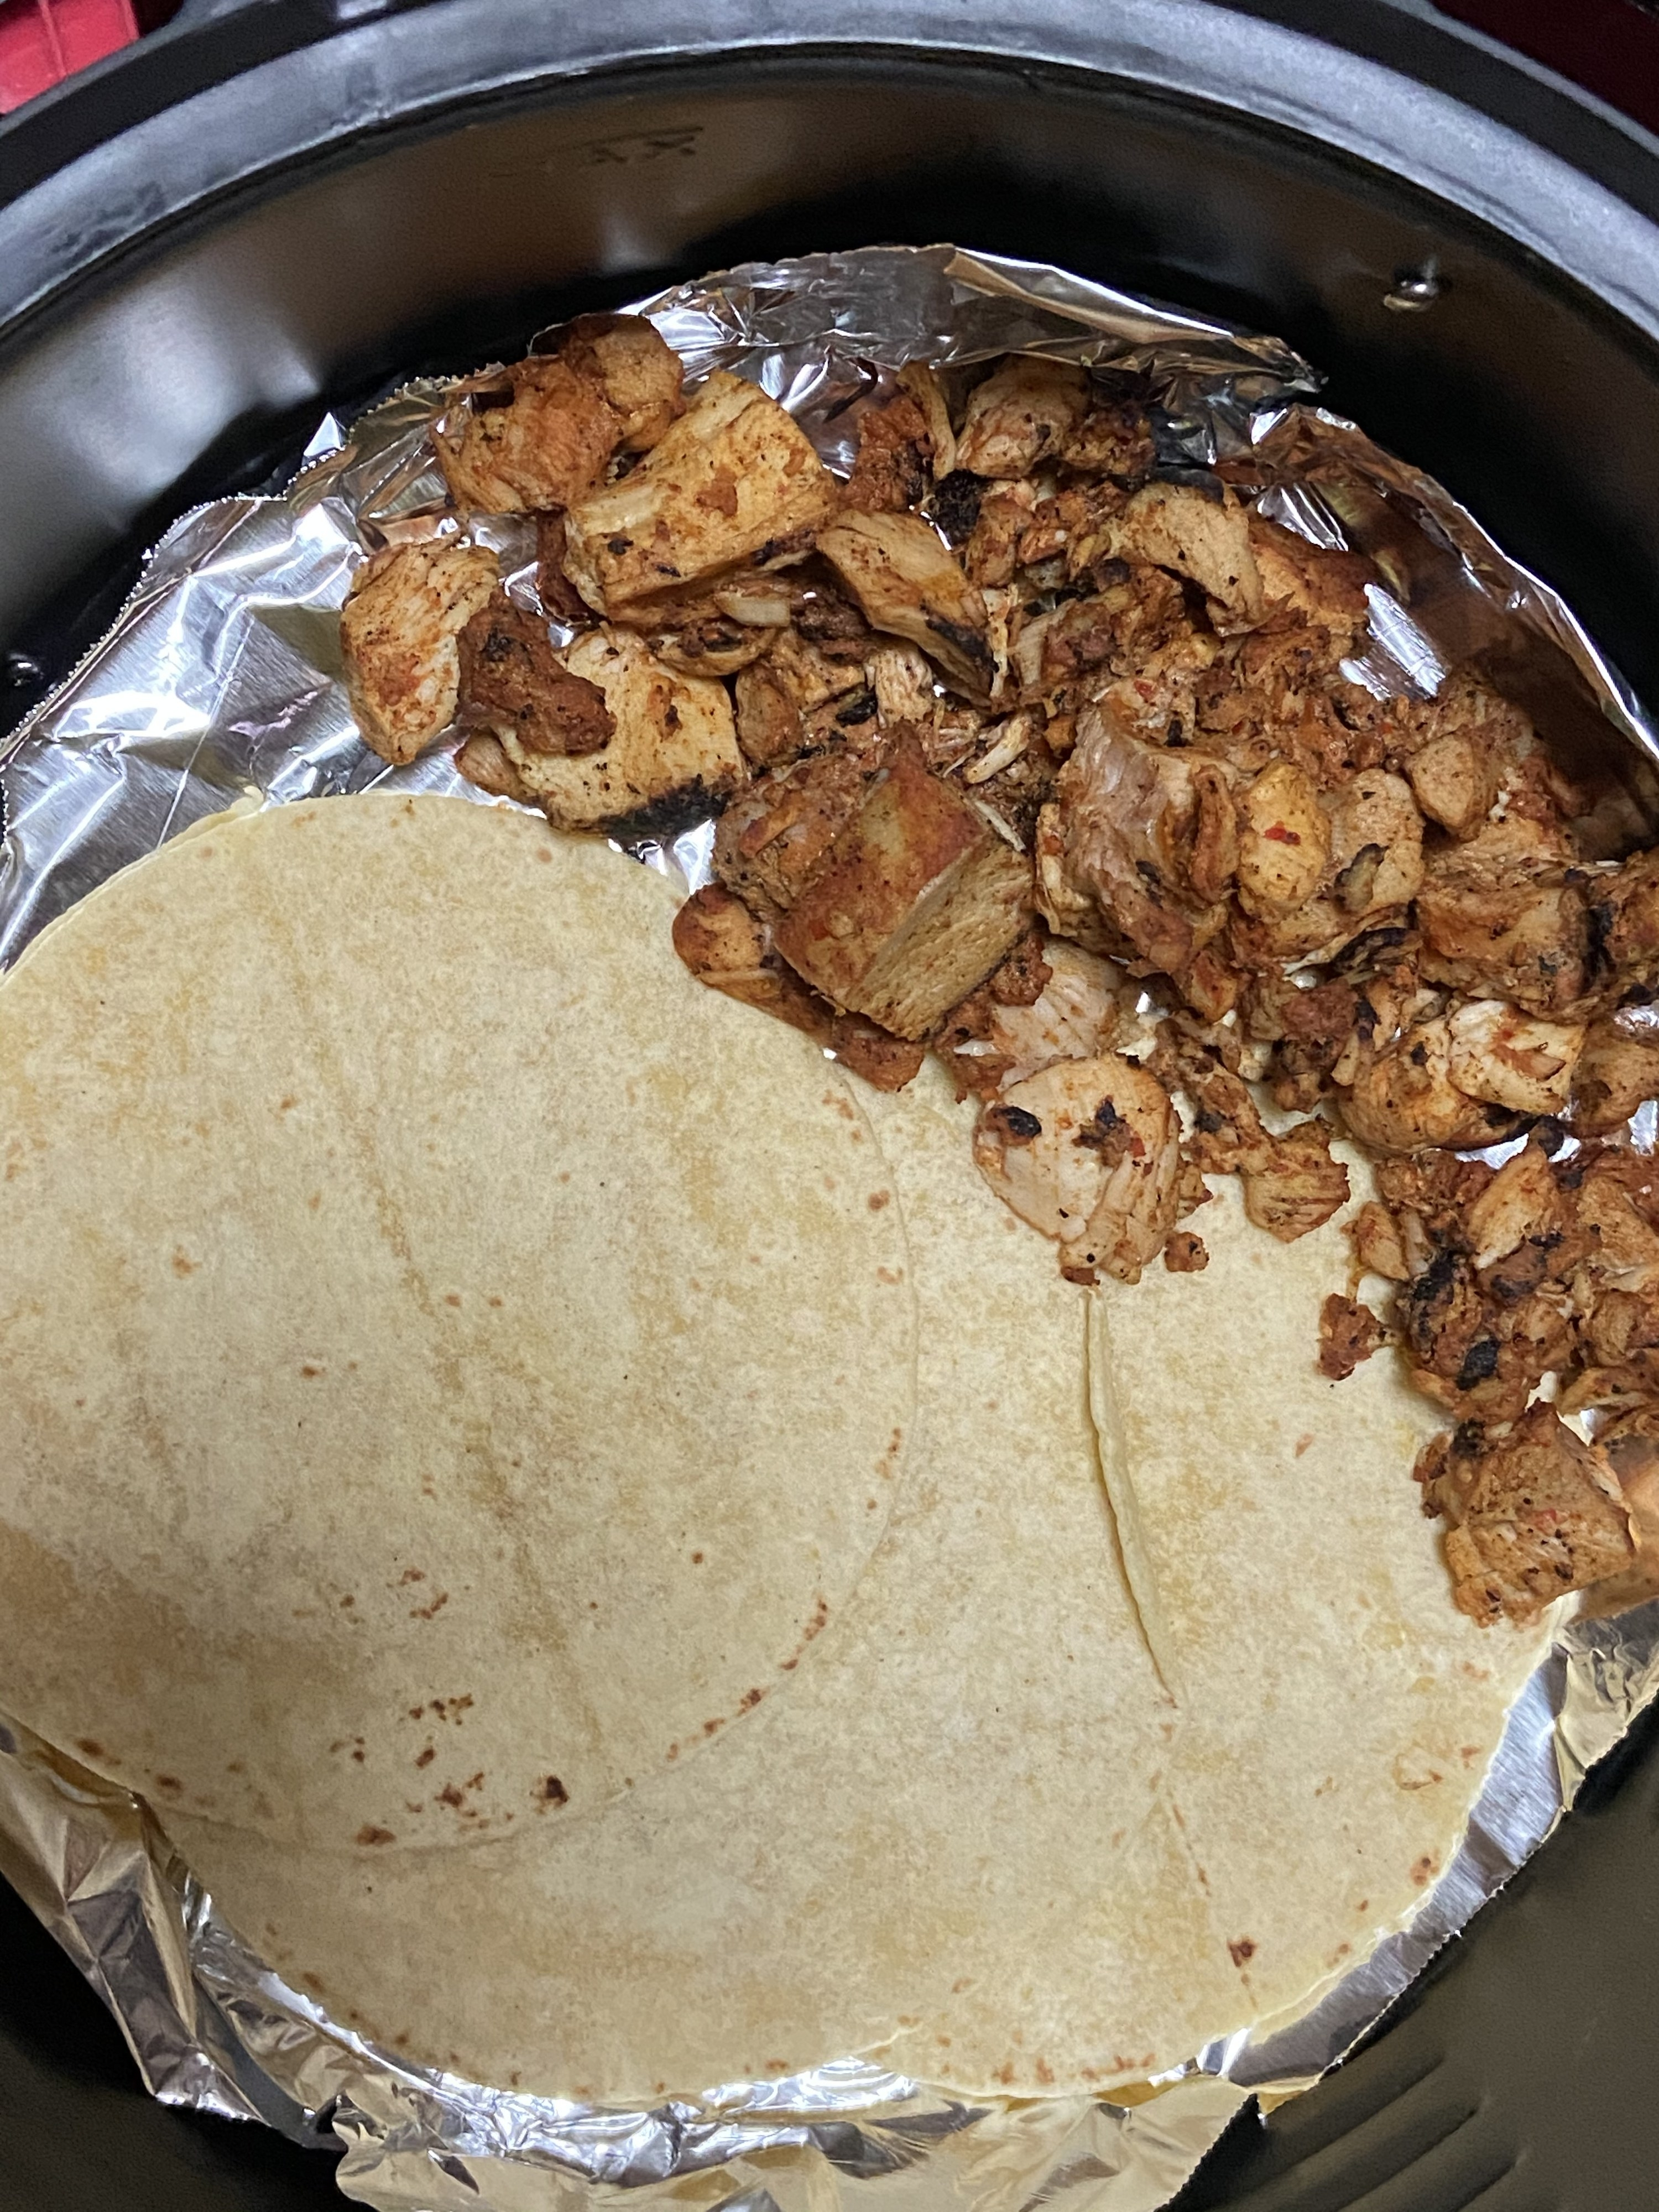 Reheated chicken pieces and tortillas in the air fryer